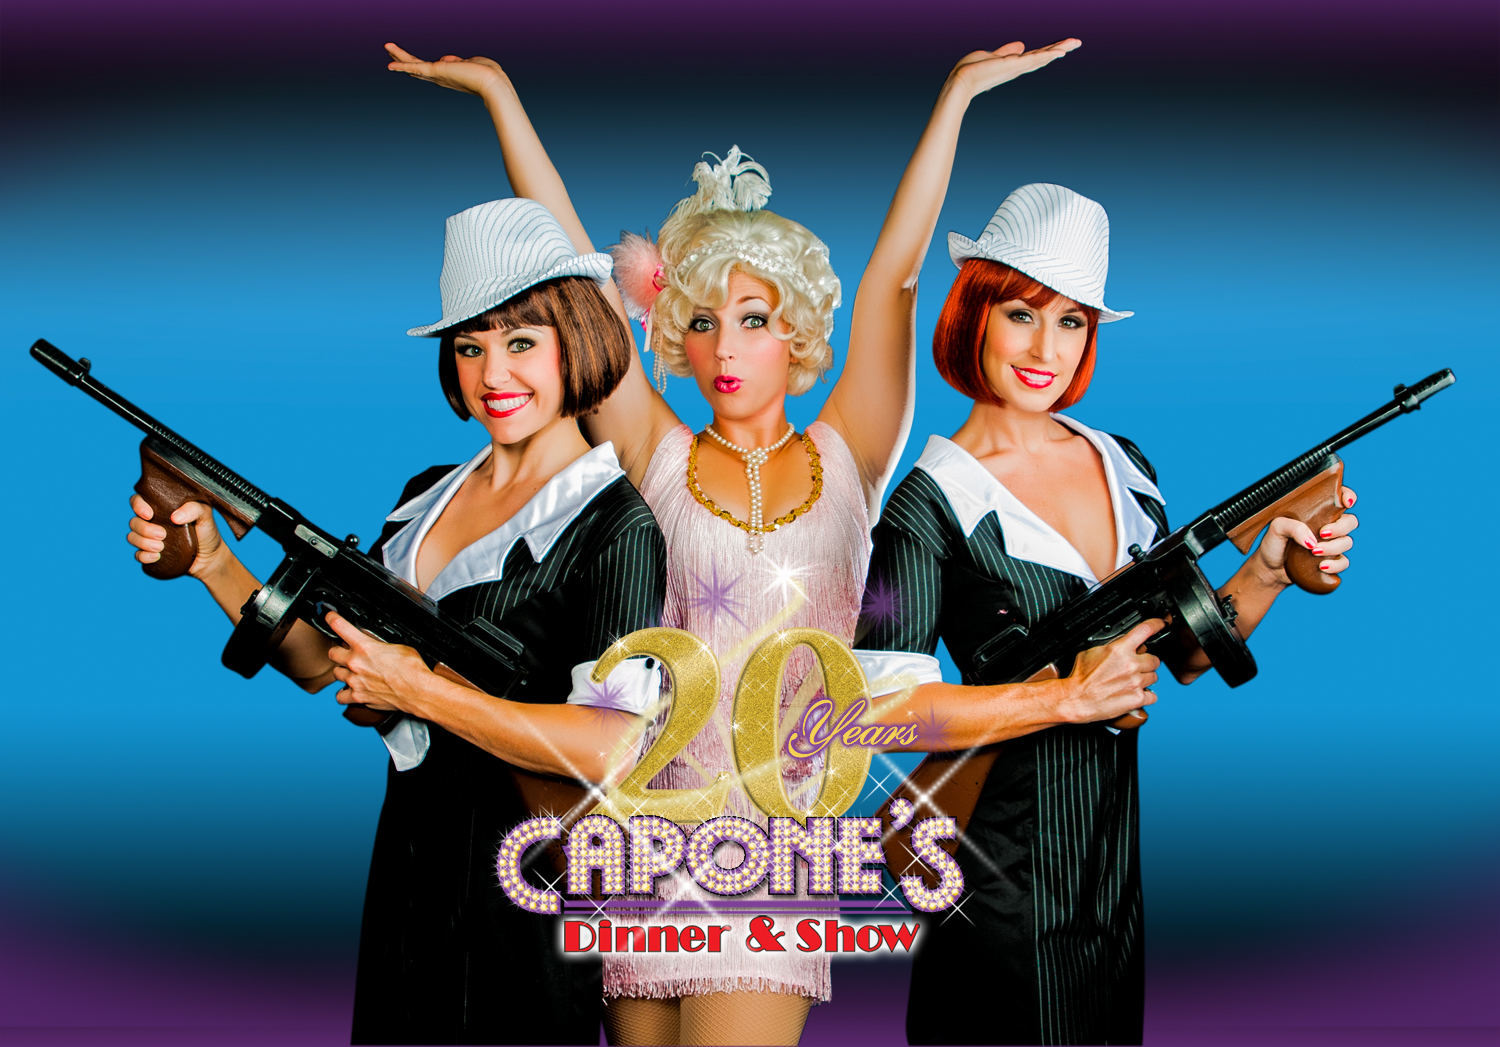 Capone's Dinner & Show is a great dinner show attraction in Orlando